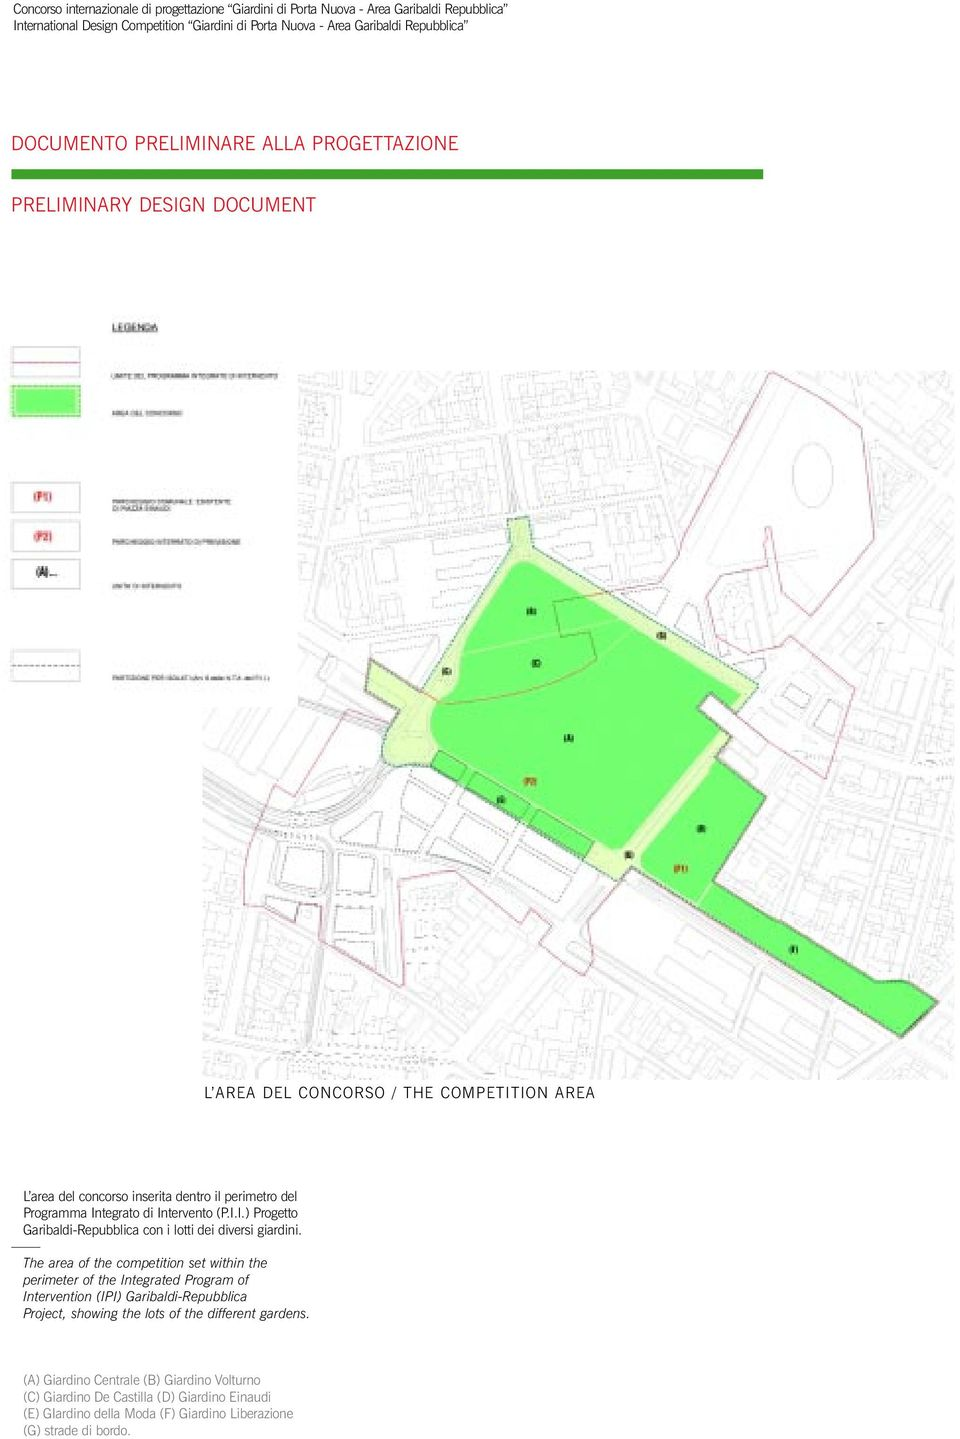 The area of the competition set within the perimeter of the Integrated Program of Intervention (IPI) Garibaldi-Repubblica Project, showing the lots of the different gardens.